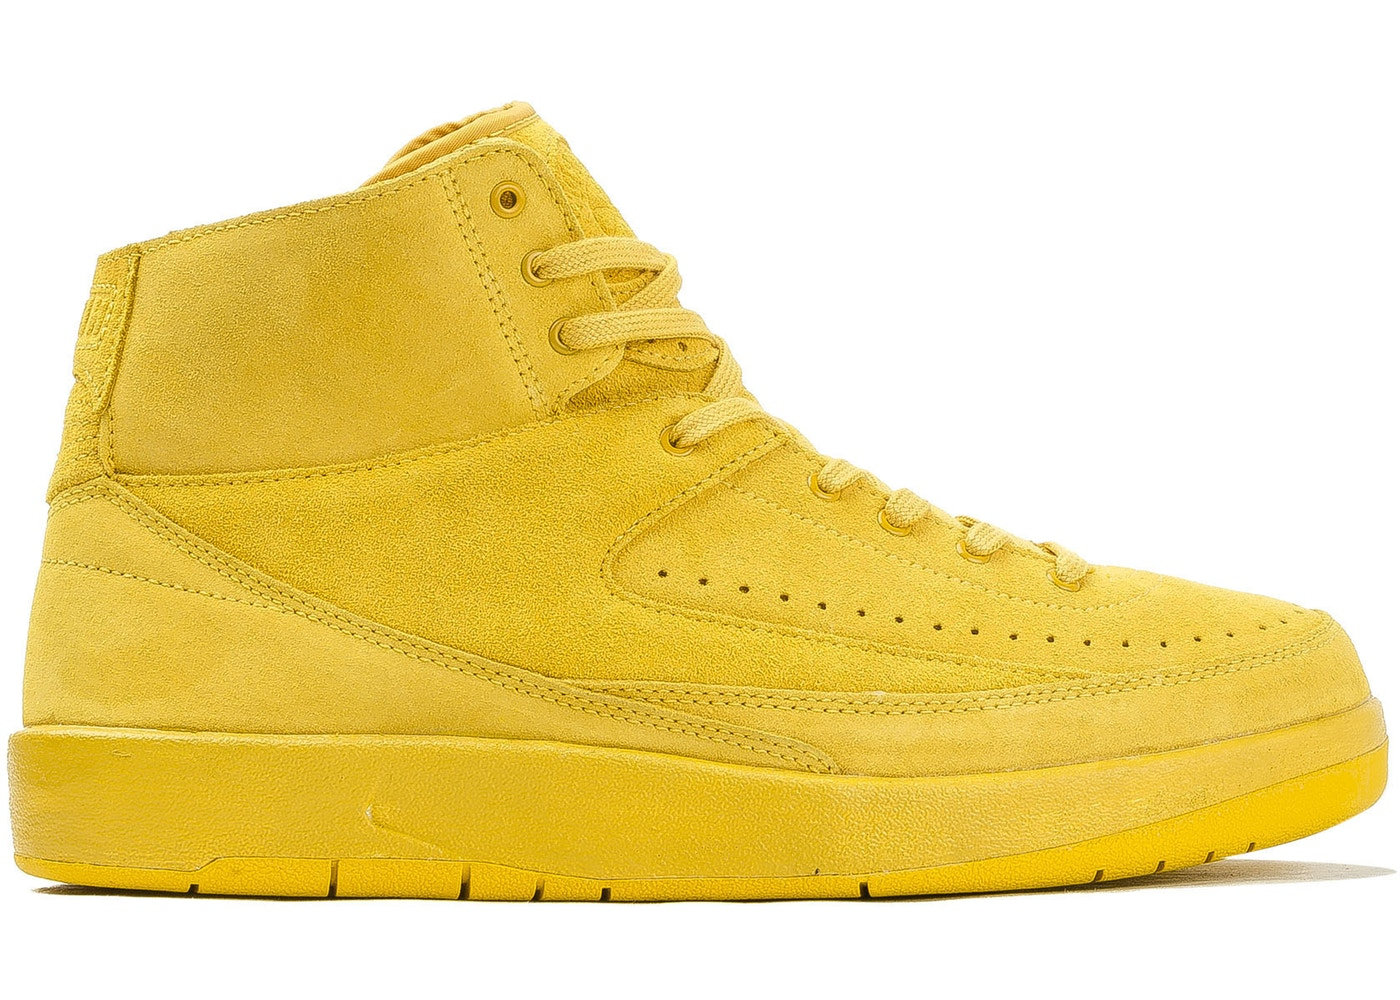 cc7036acfa9a Jordan 2 Retro Decon Mineral Gold - 897521-707